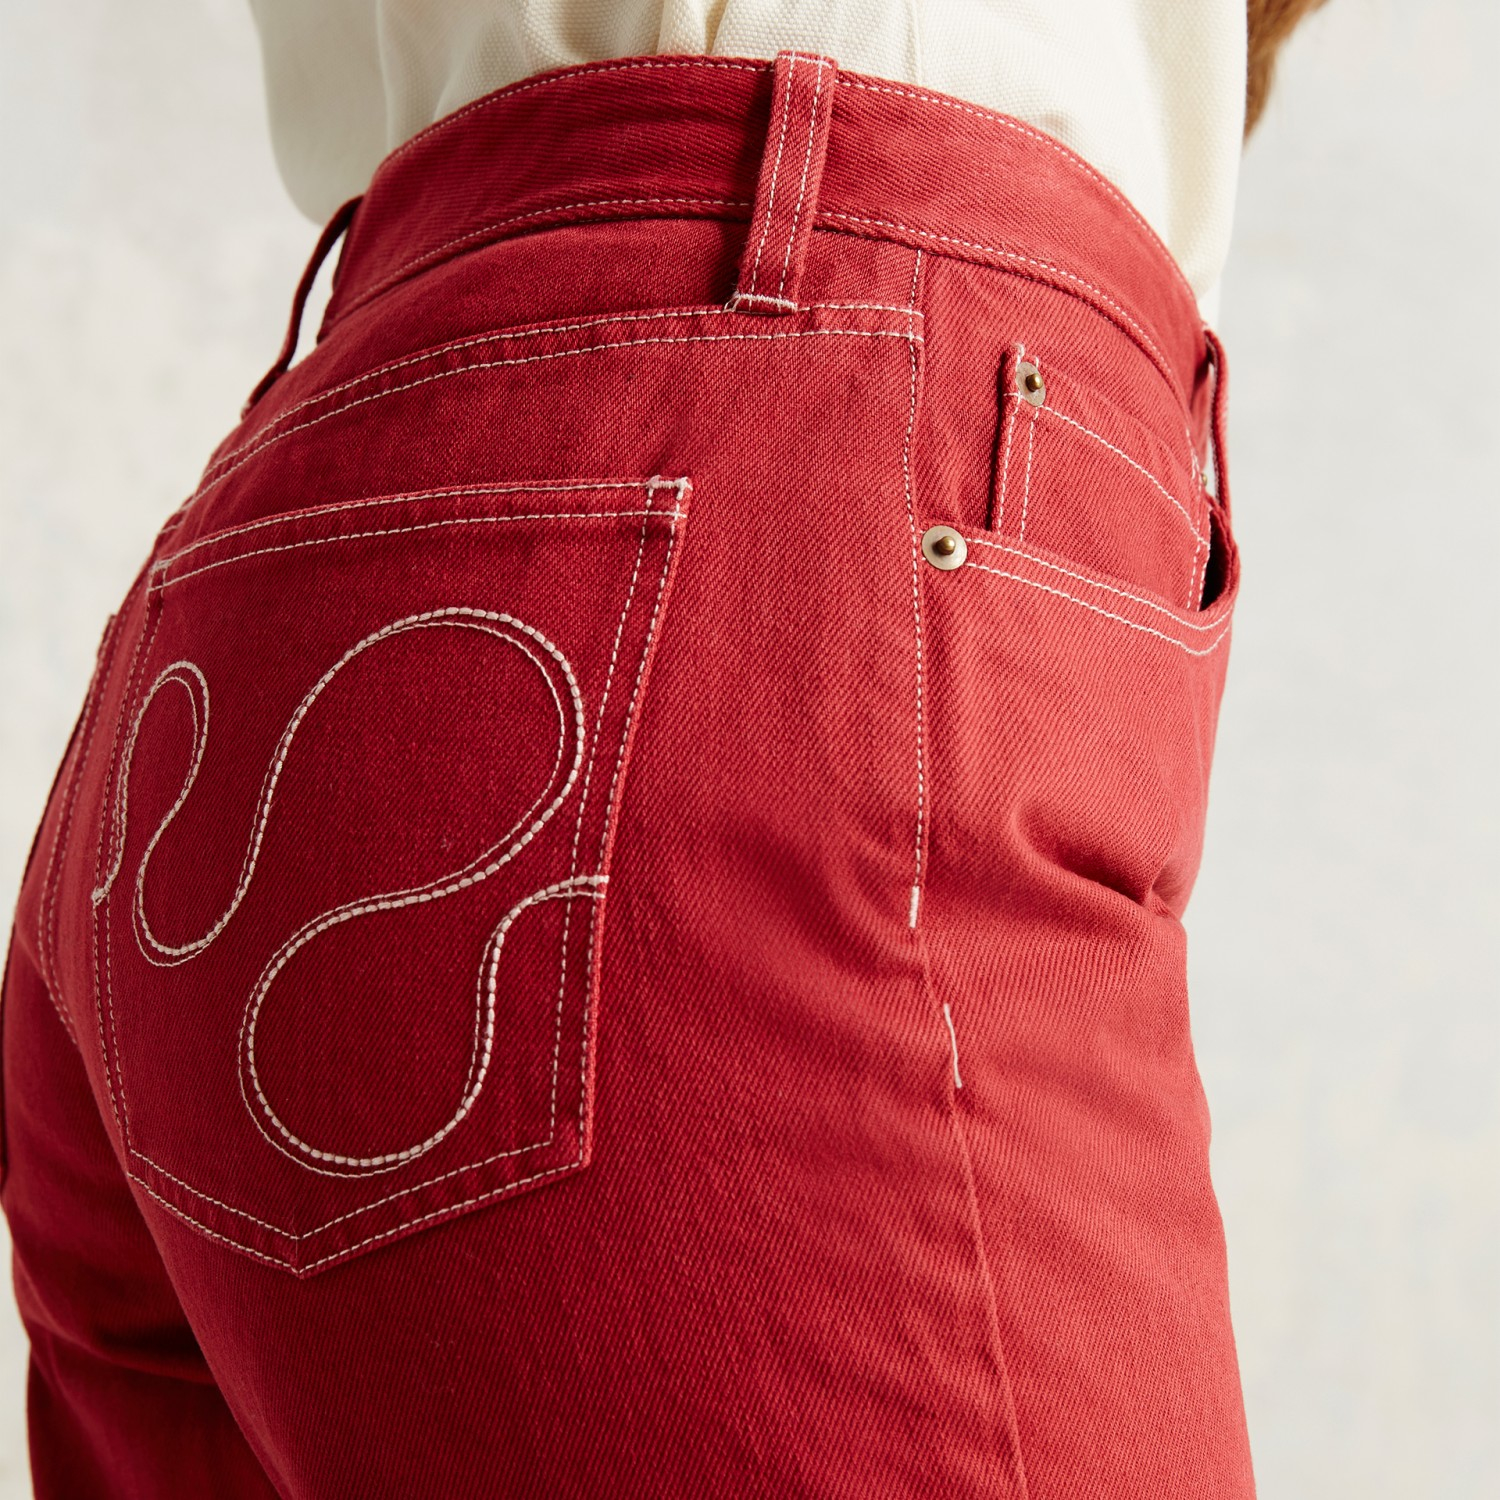 Trademark embroidered pocket jean in red lyst